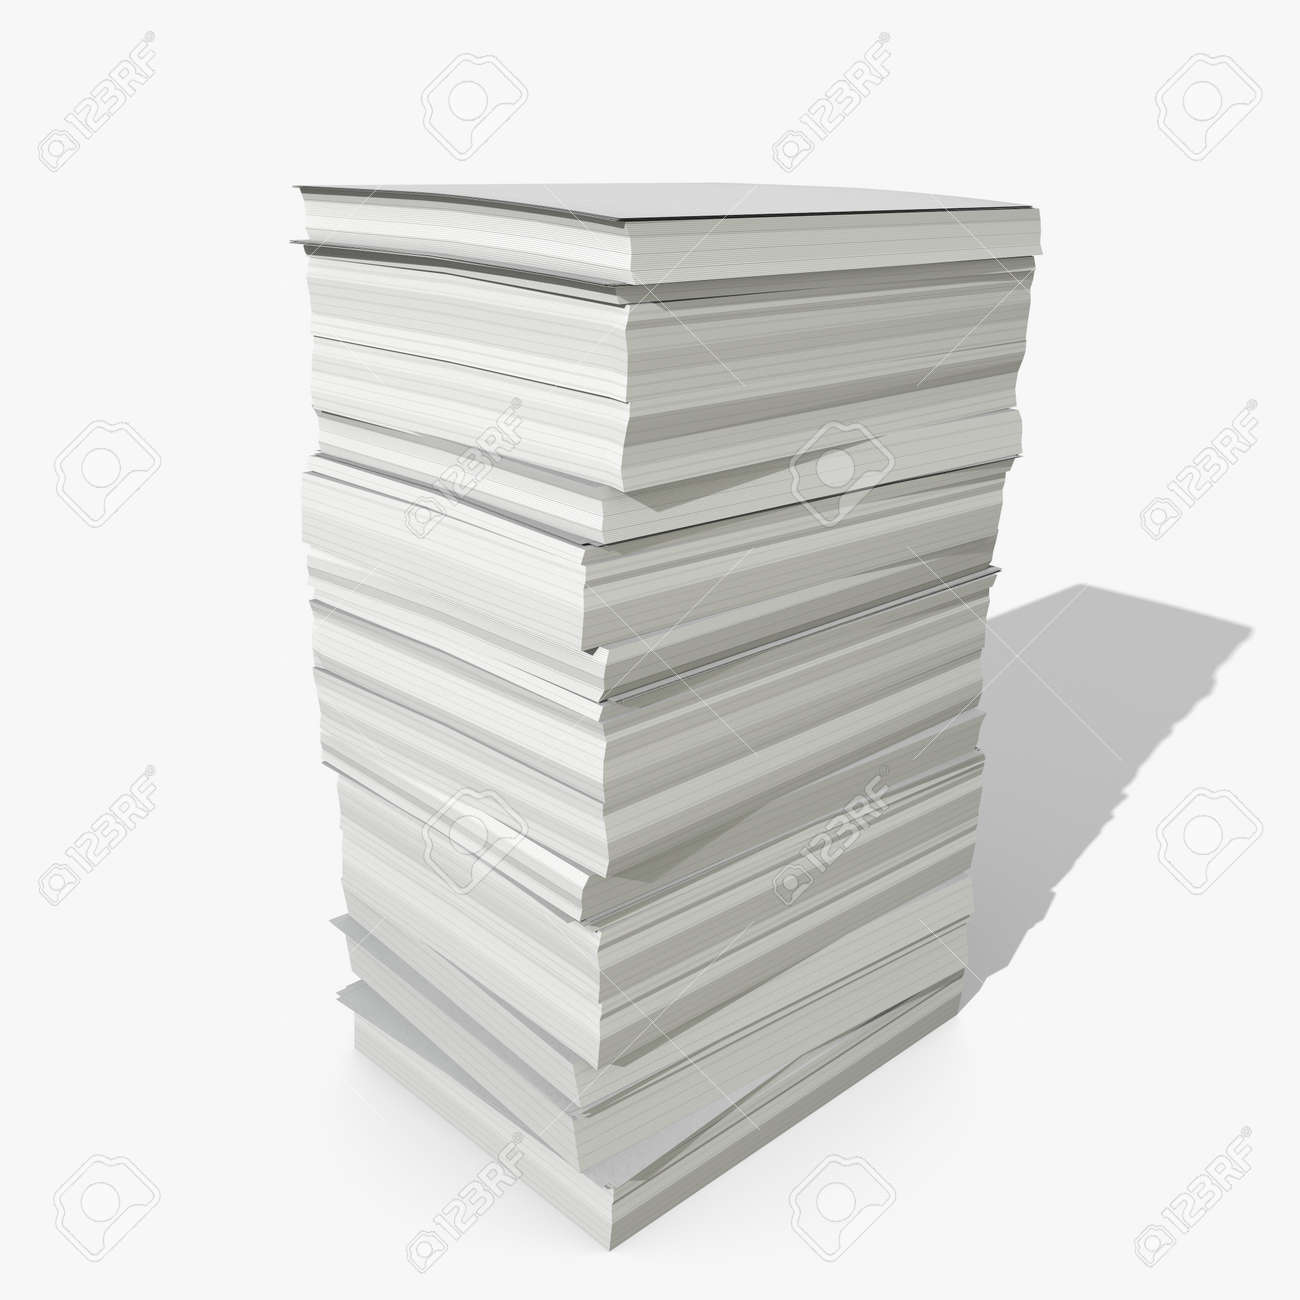 3d illustration of a stack of paper stock photo, picture and royalty